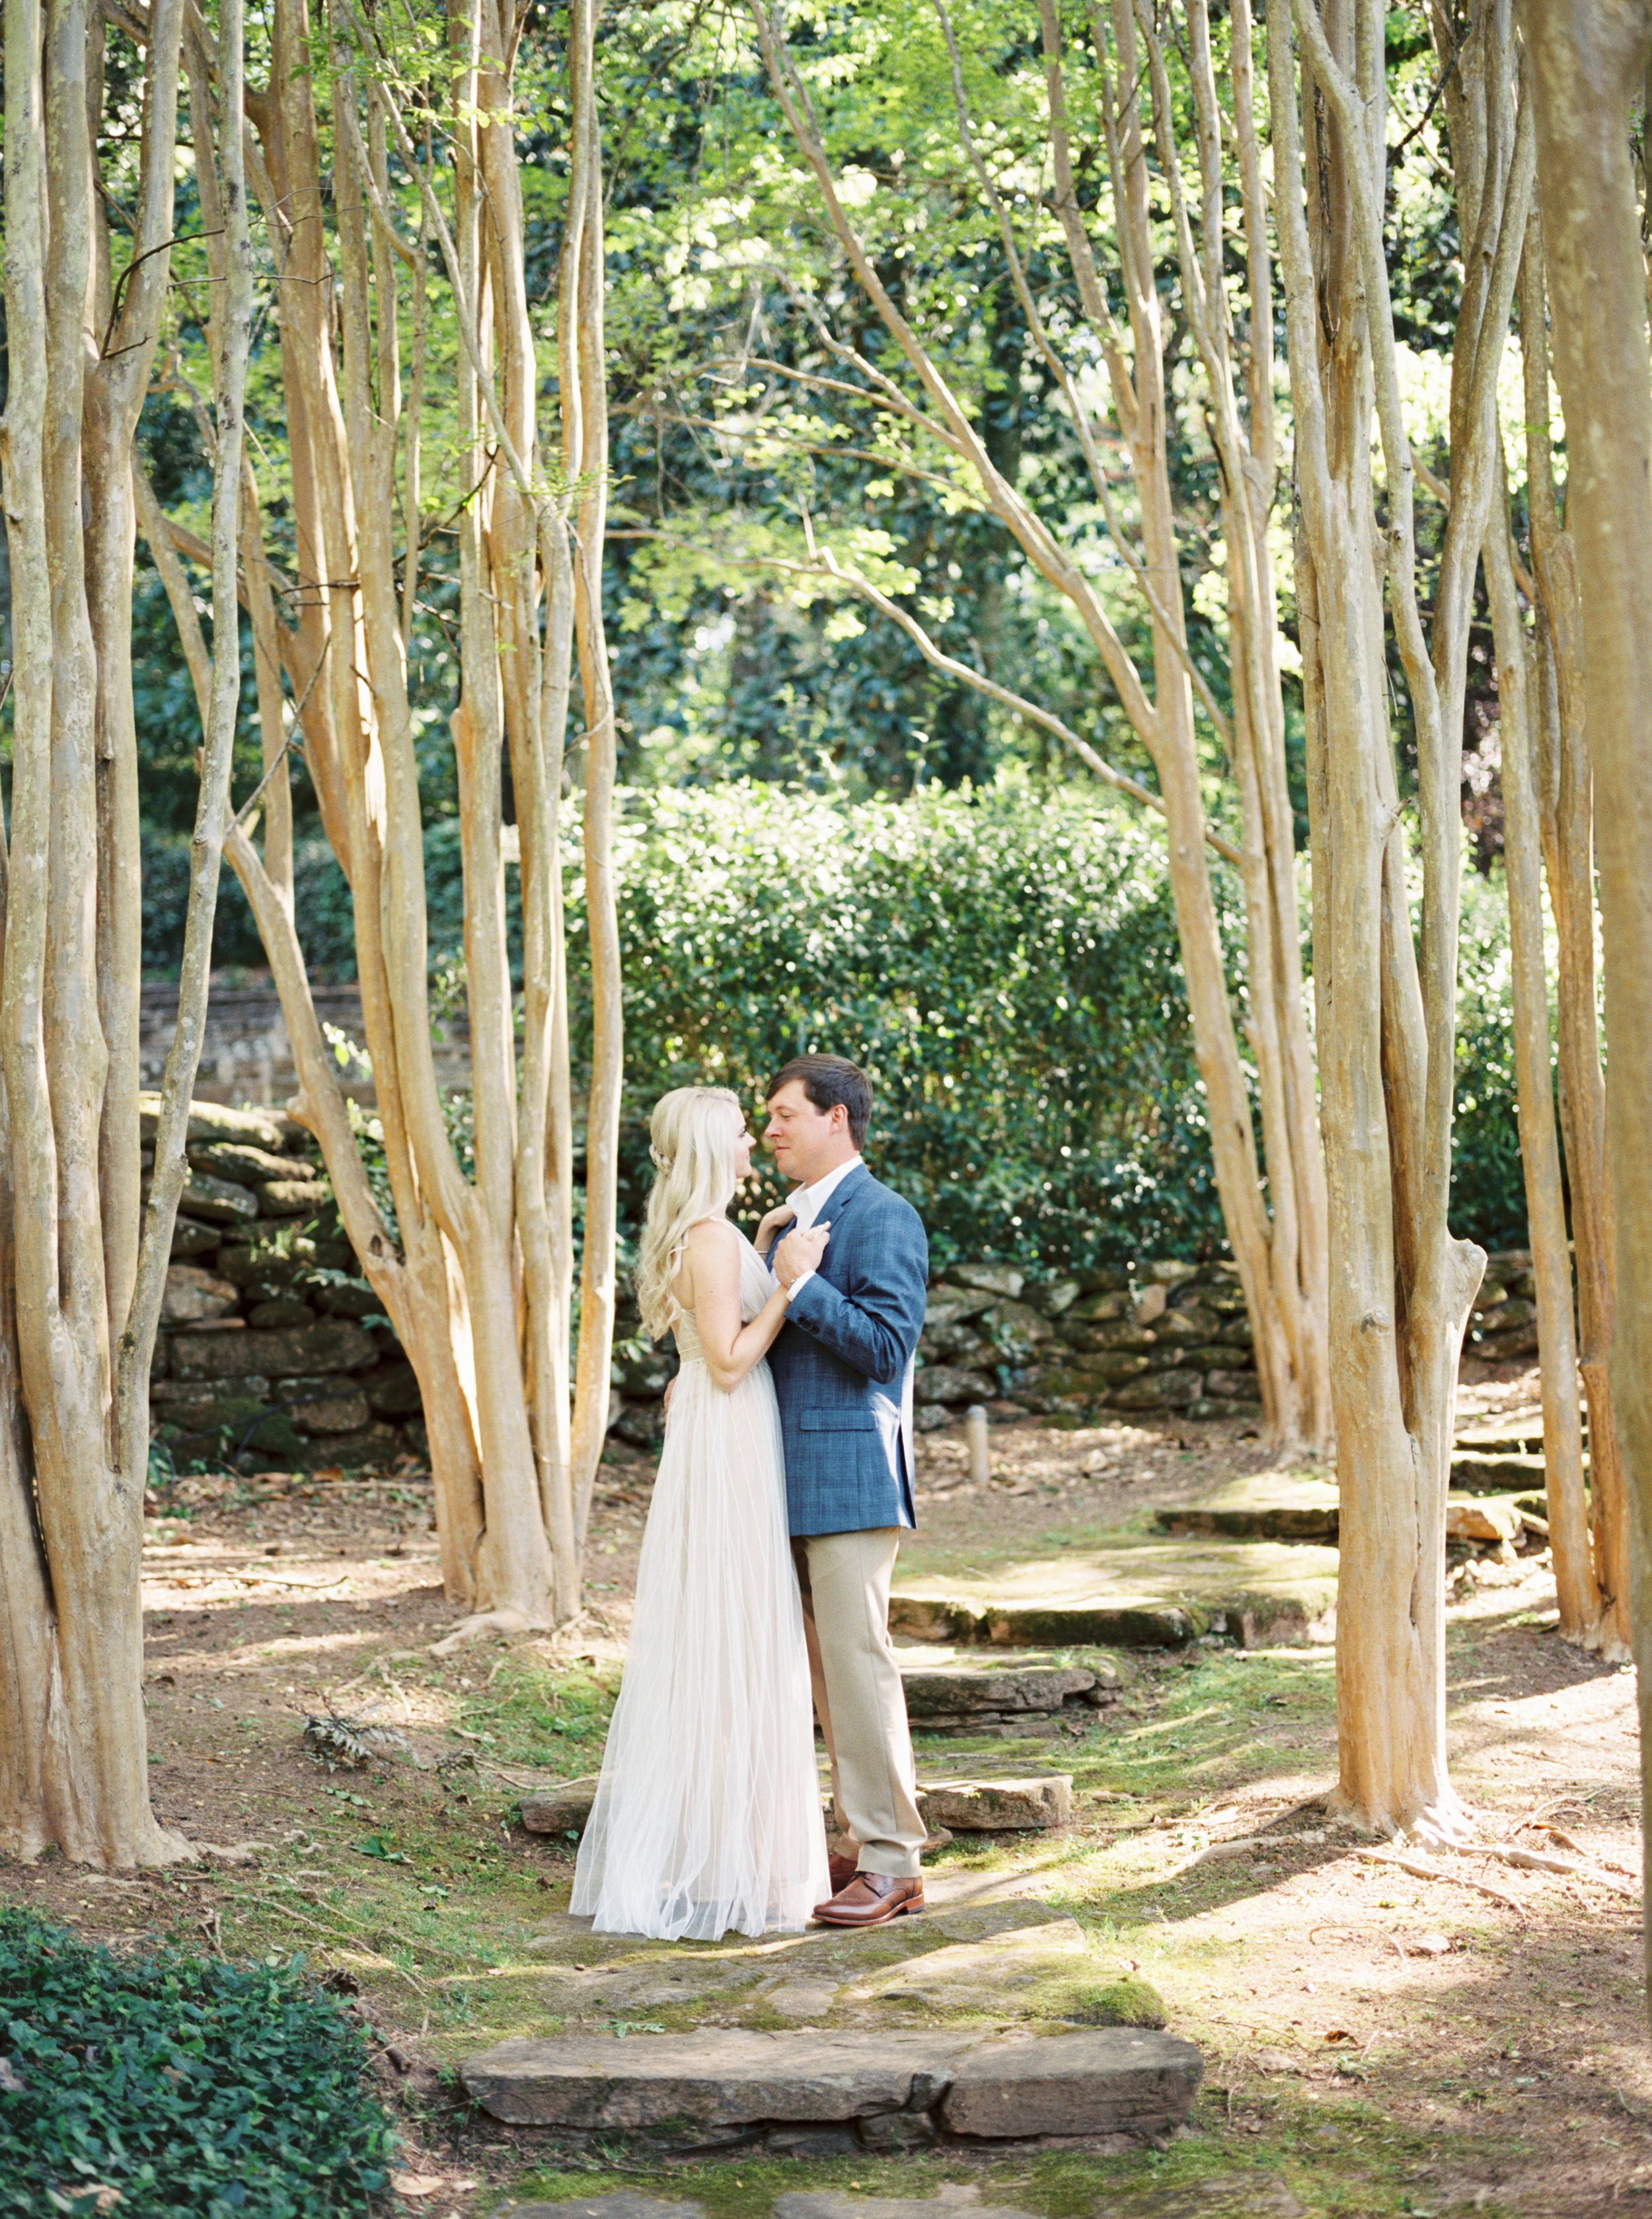 Erin_Johnny_Engagement_Dunaway_Gardens_Georgia_Film_Fallen_Photography-51.JPG